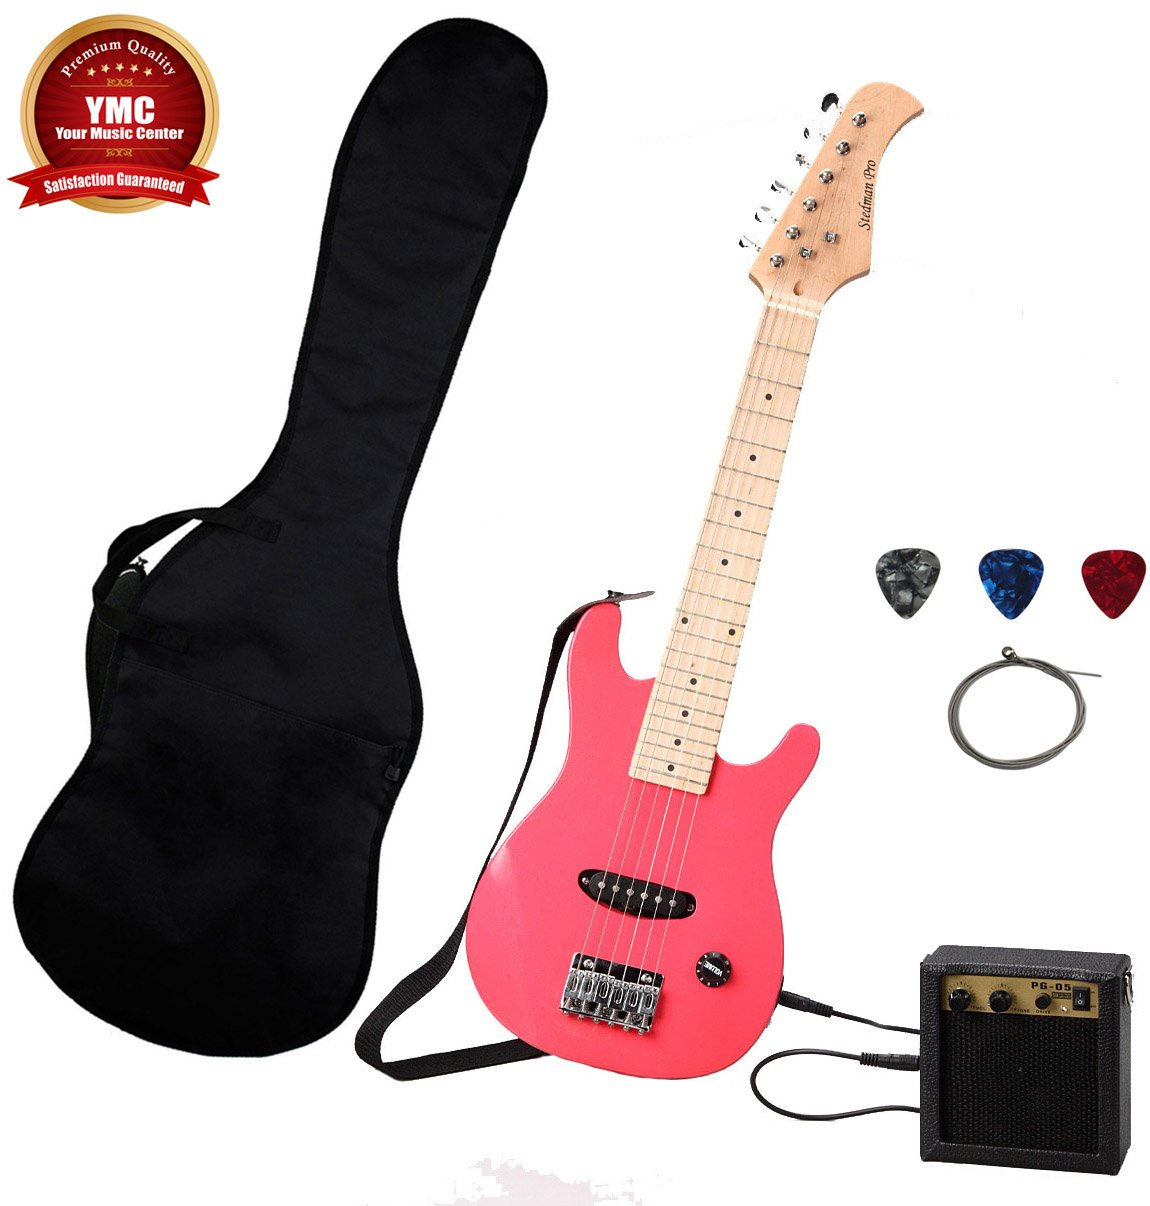 Stedman Kid Series Electric Guitar Pack with 5-Watt Amp, Gig Bag, Strap, Cable, Strings, Picks, and Wrench - Pink YMC EG31-PK-5W